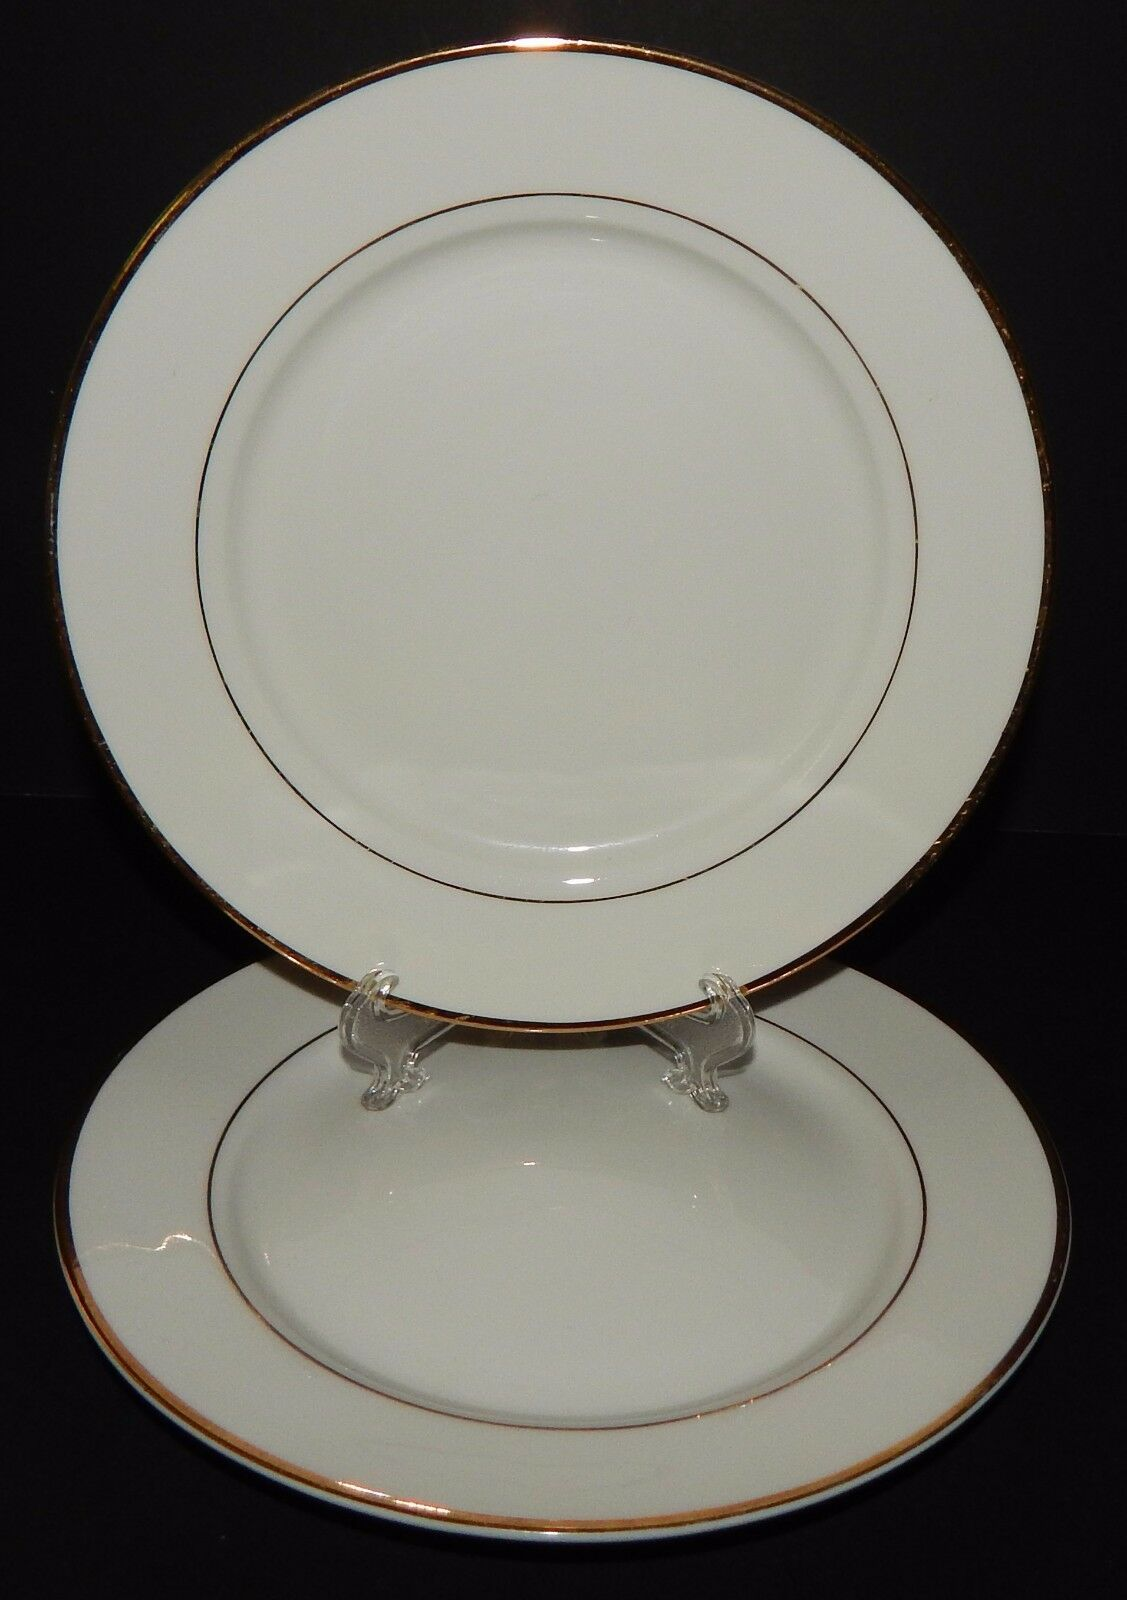 2 Gibson Designs Housewares Everyday  Bread Plates China White with Gold Rim - $22.76